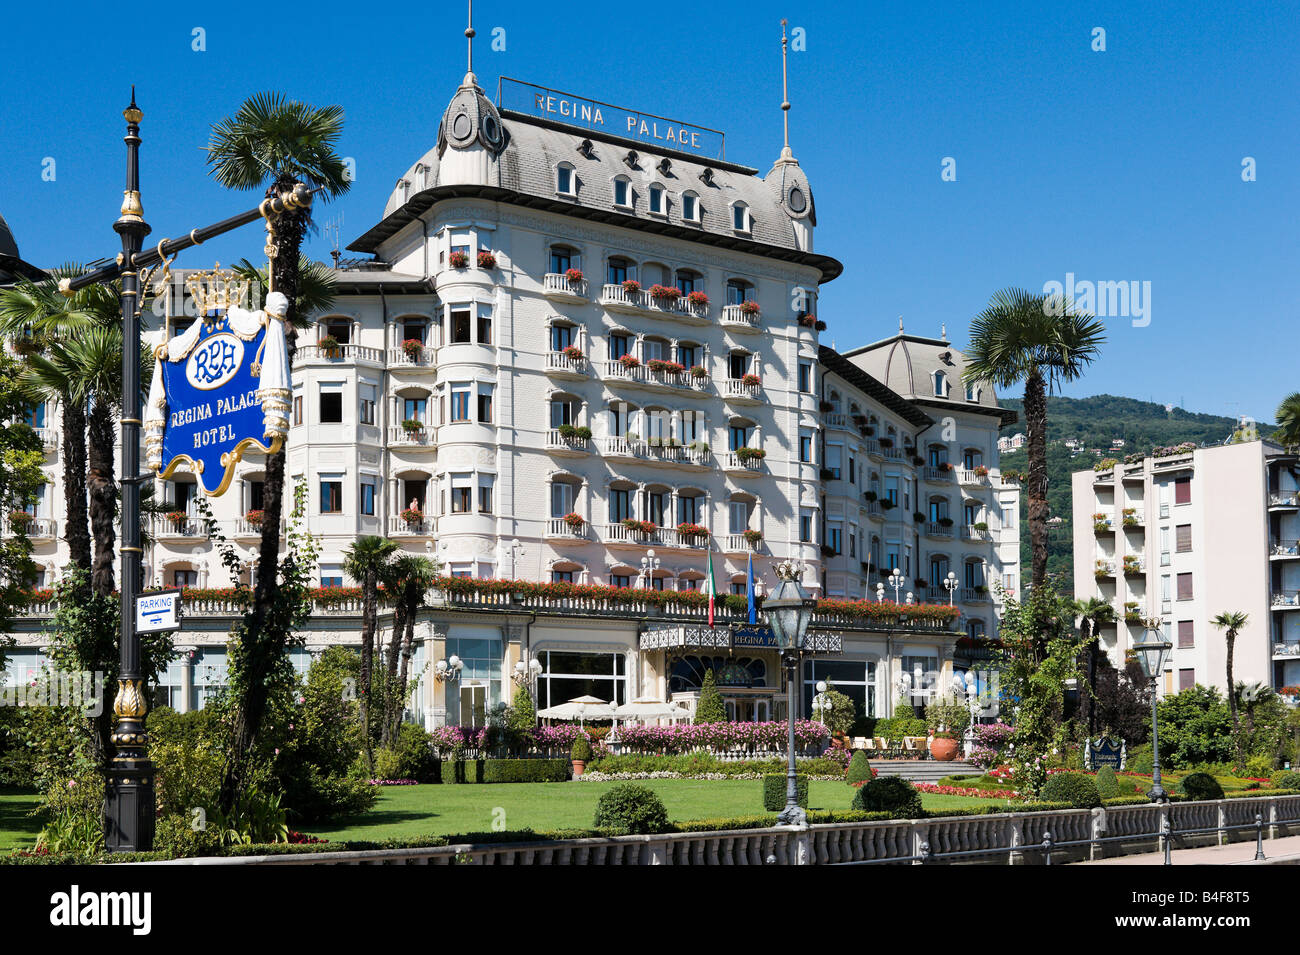 Hotel Regina Palace One Of Many Classic Grand Hotels On The Stock Photo Alamy